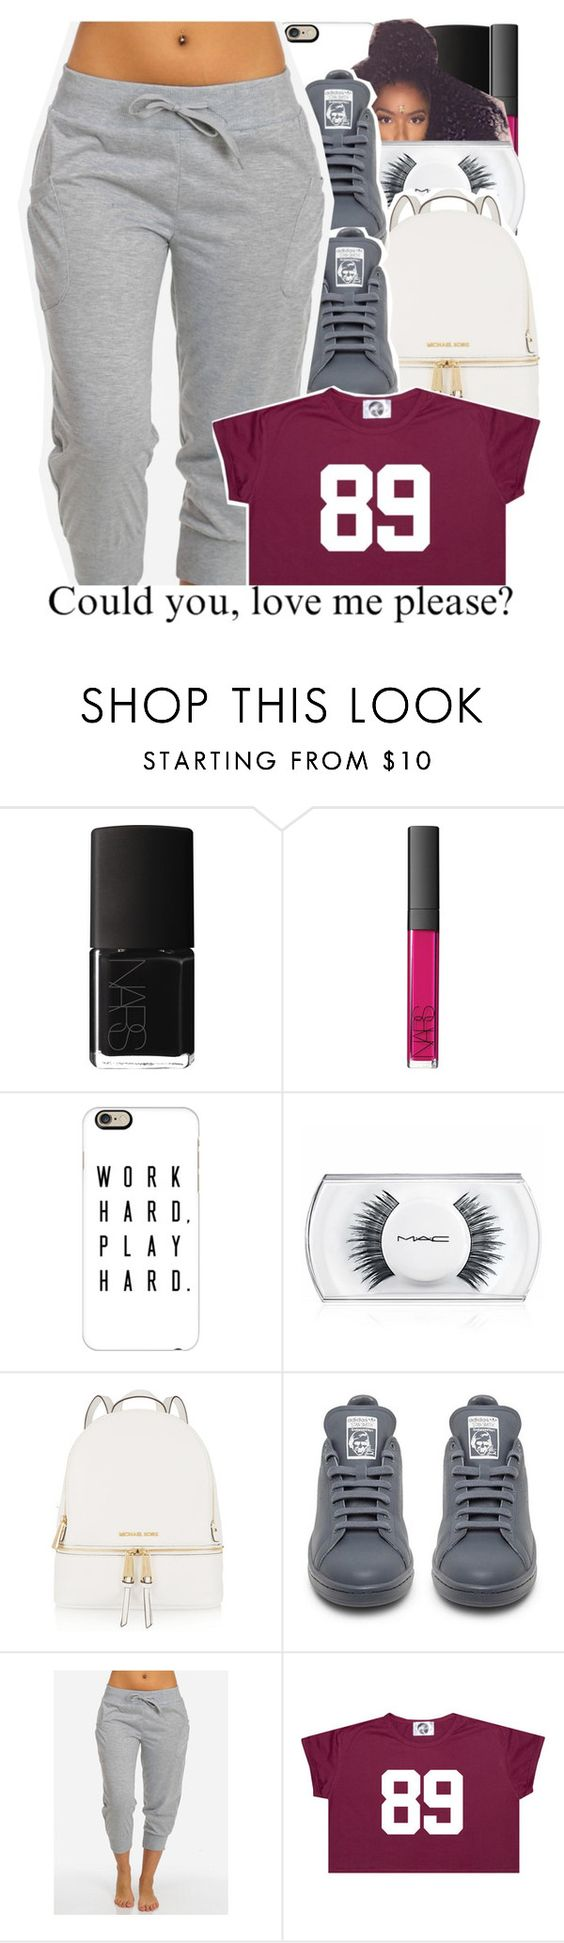 """07-02-2016."" by trillestqueen ❤ liked on Polyvore featuring NARS Cosmetics, Casetify, MAC Cosmetics, MICHAEL Michael Kors and adidas"